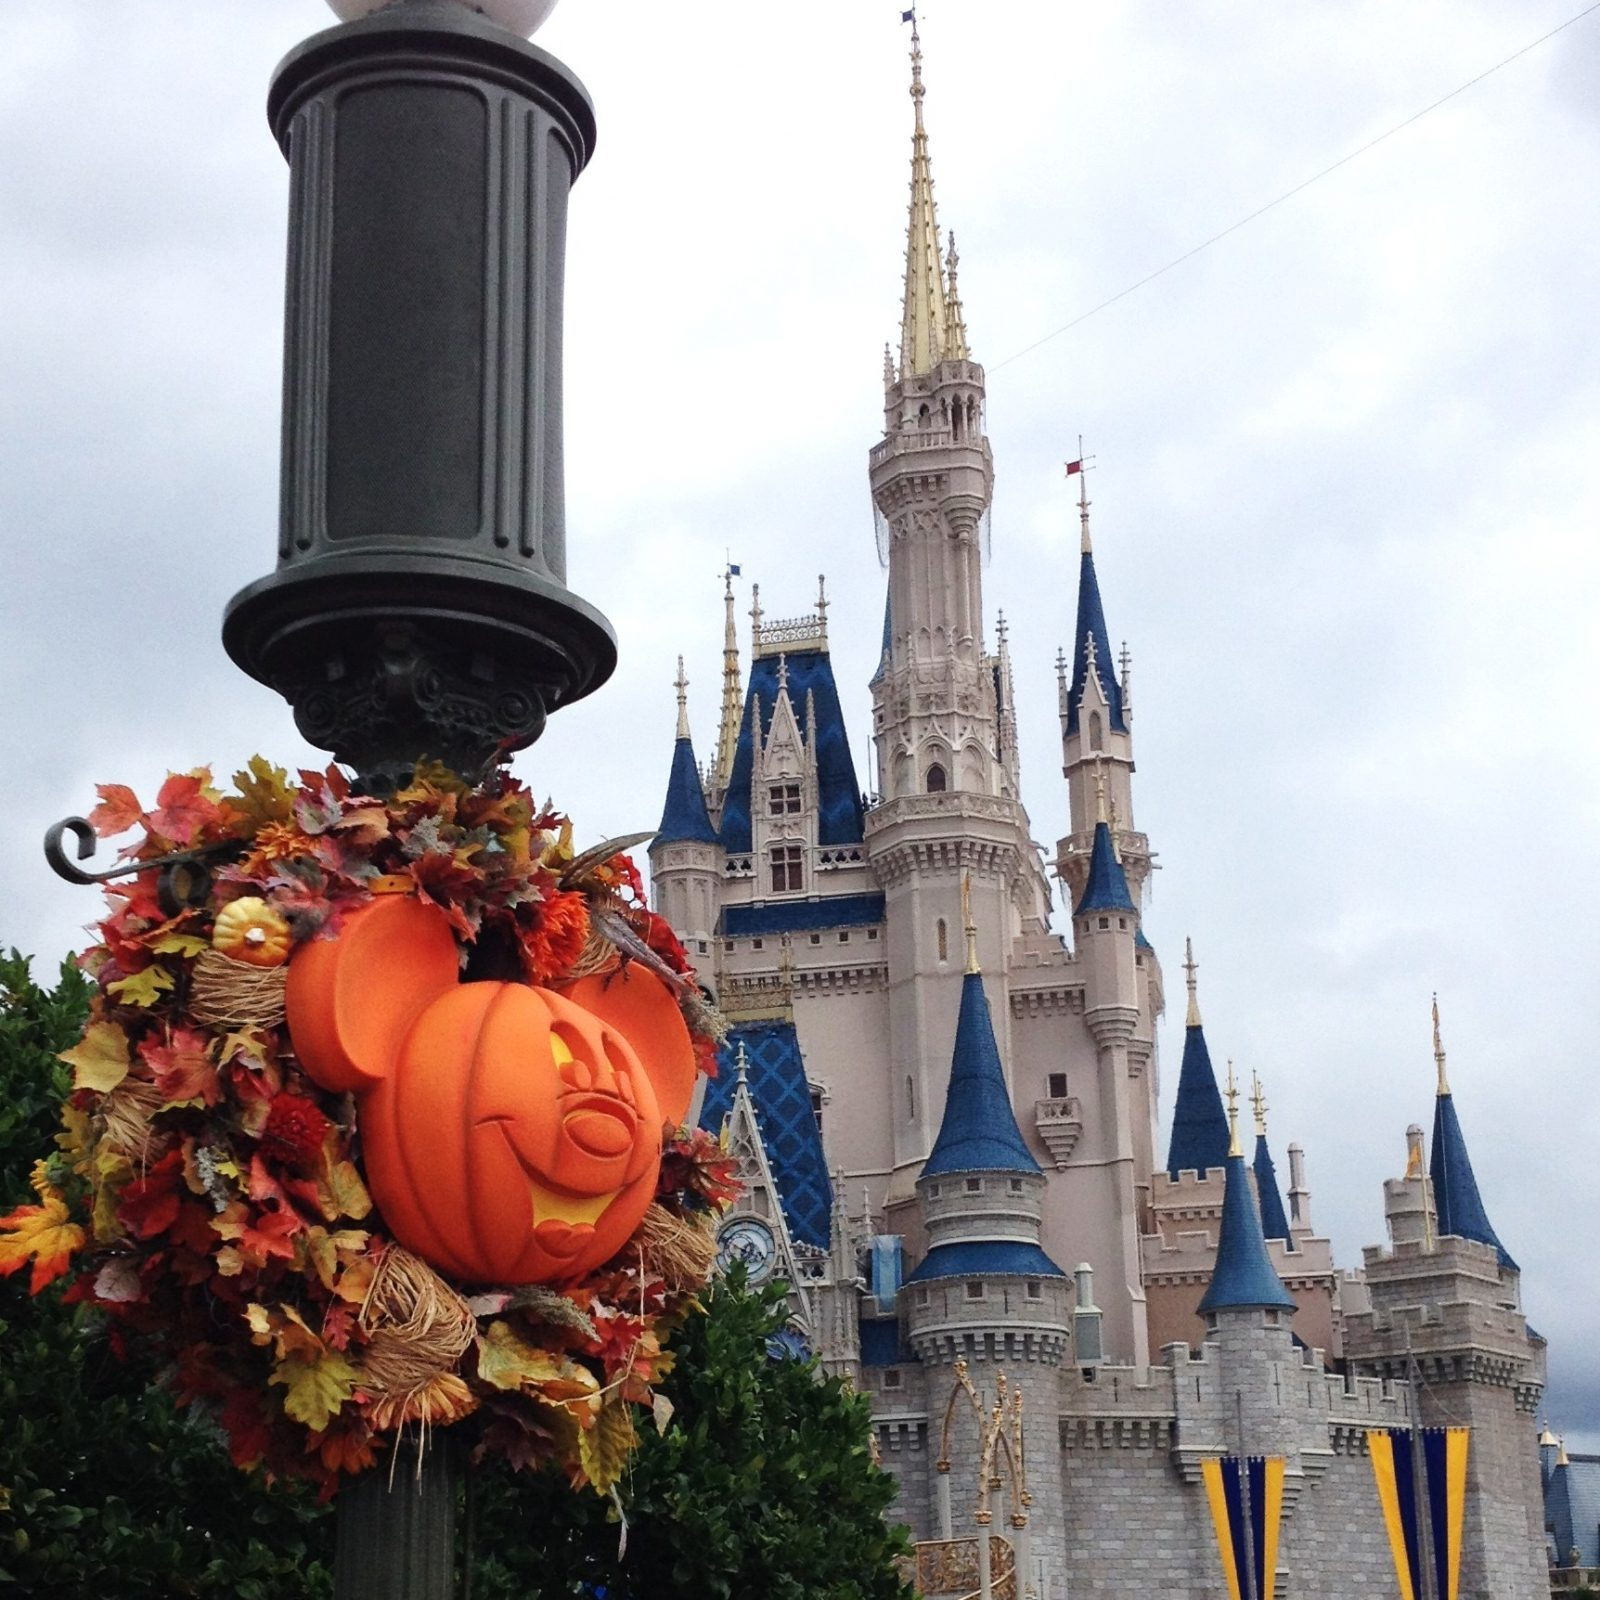 halloween decor on lamp post with cinderella's castle in the background